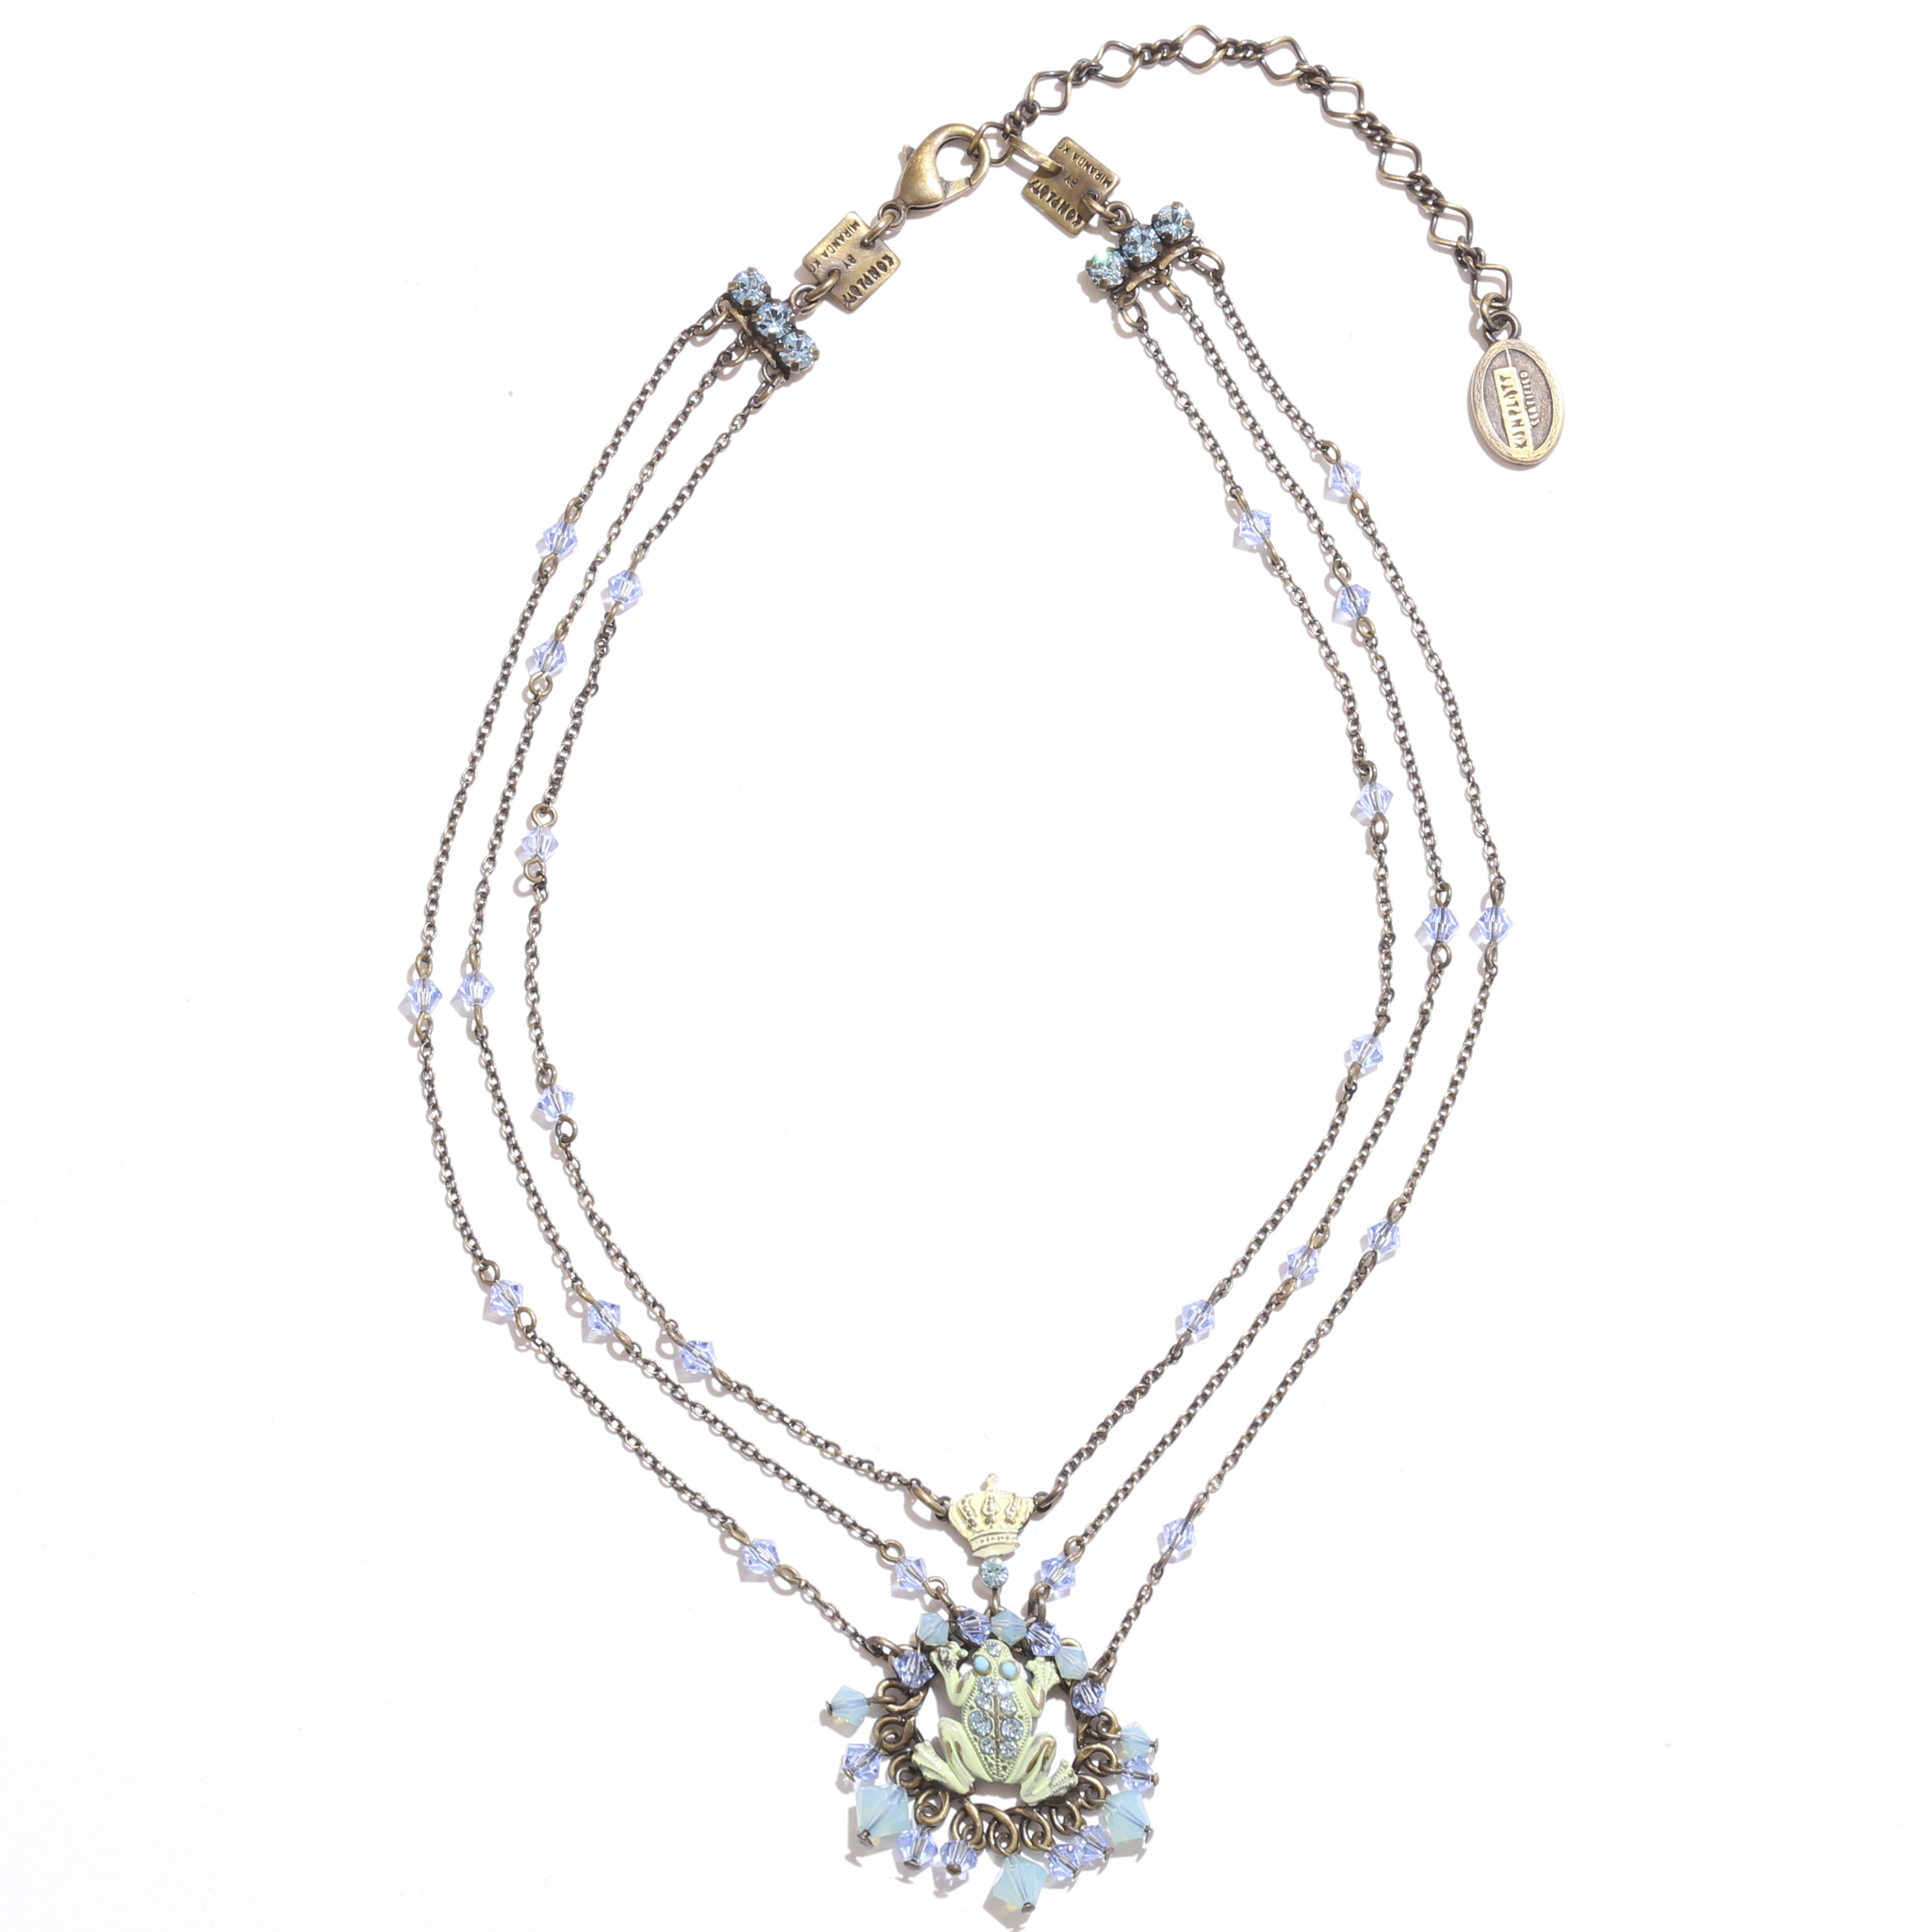 Carousel neklace/anklet ネックレス カエル